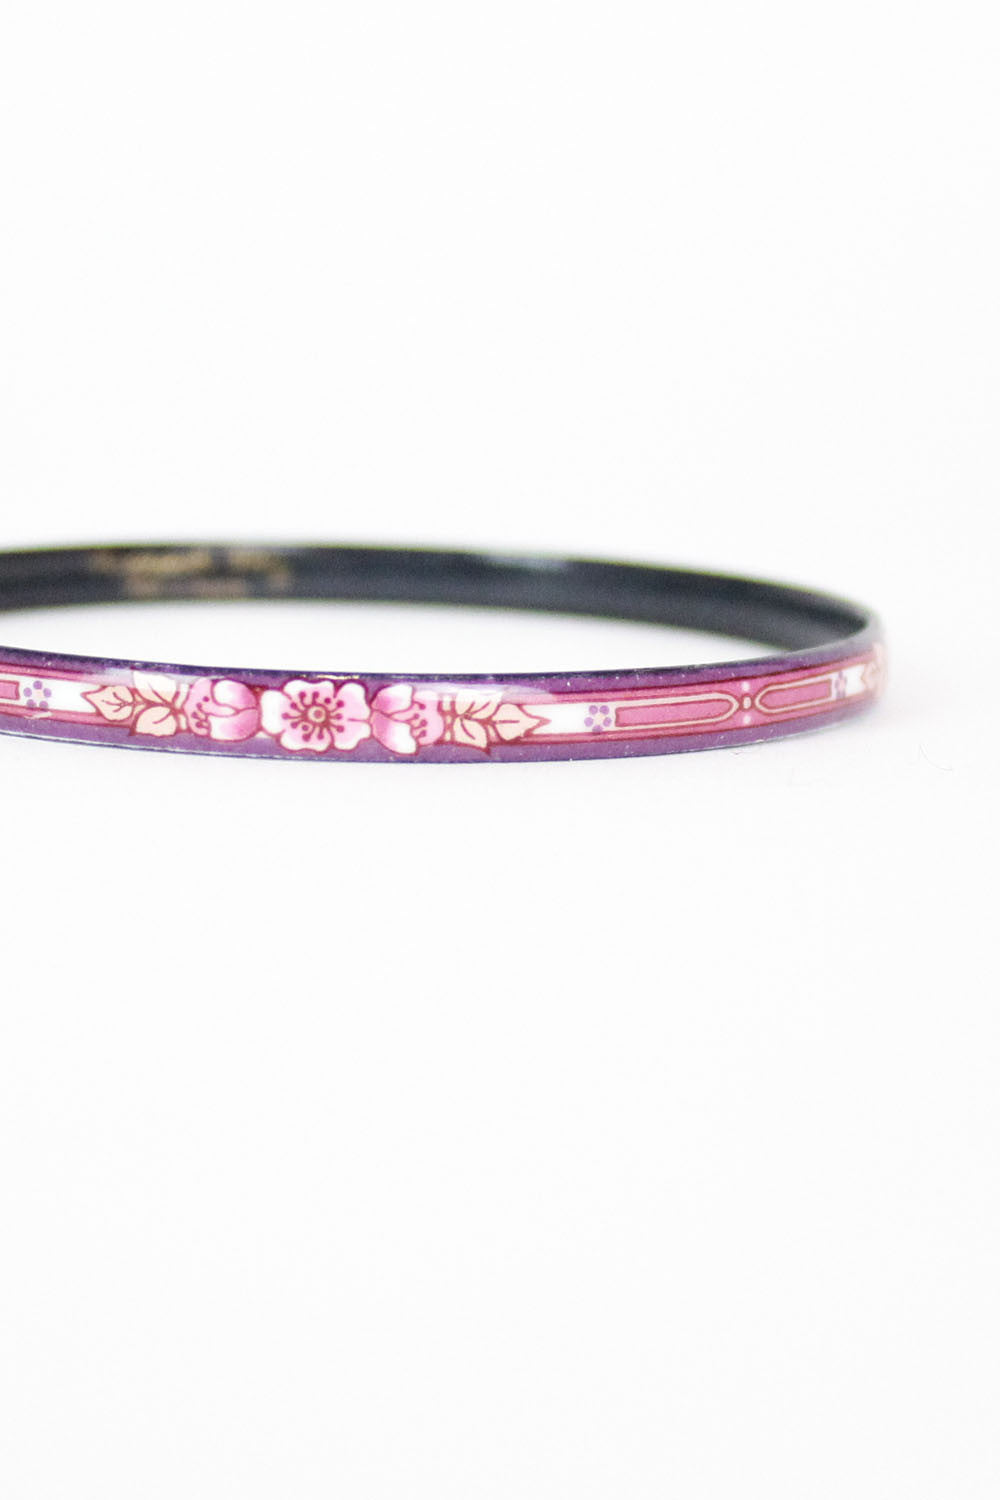 Michaela Frey Enamel Bangle